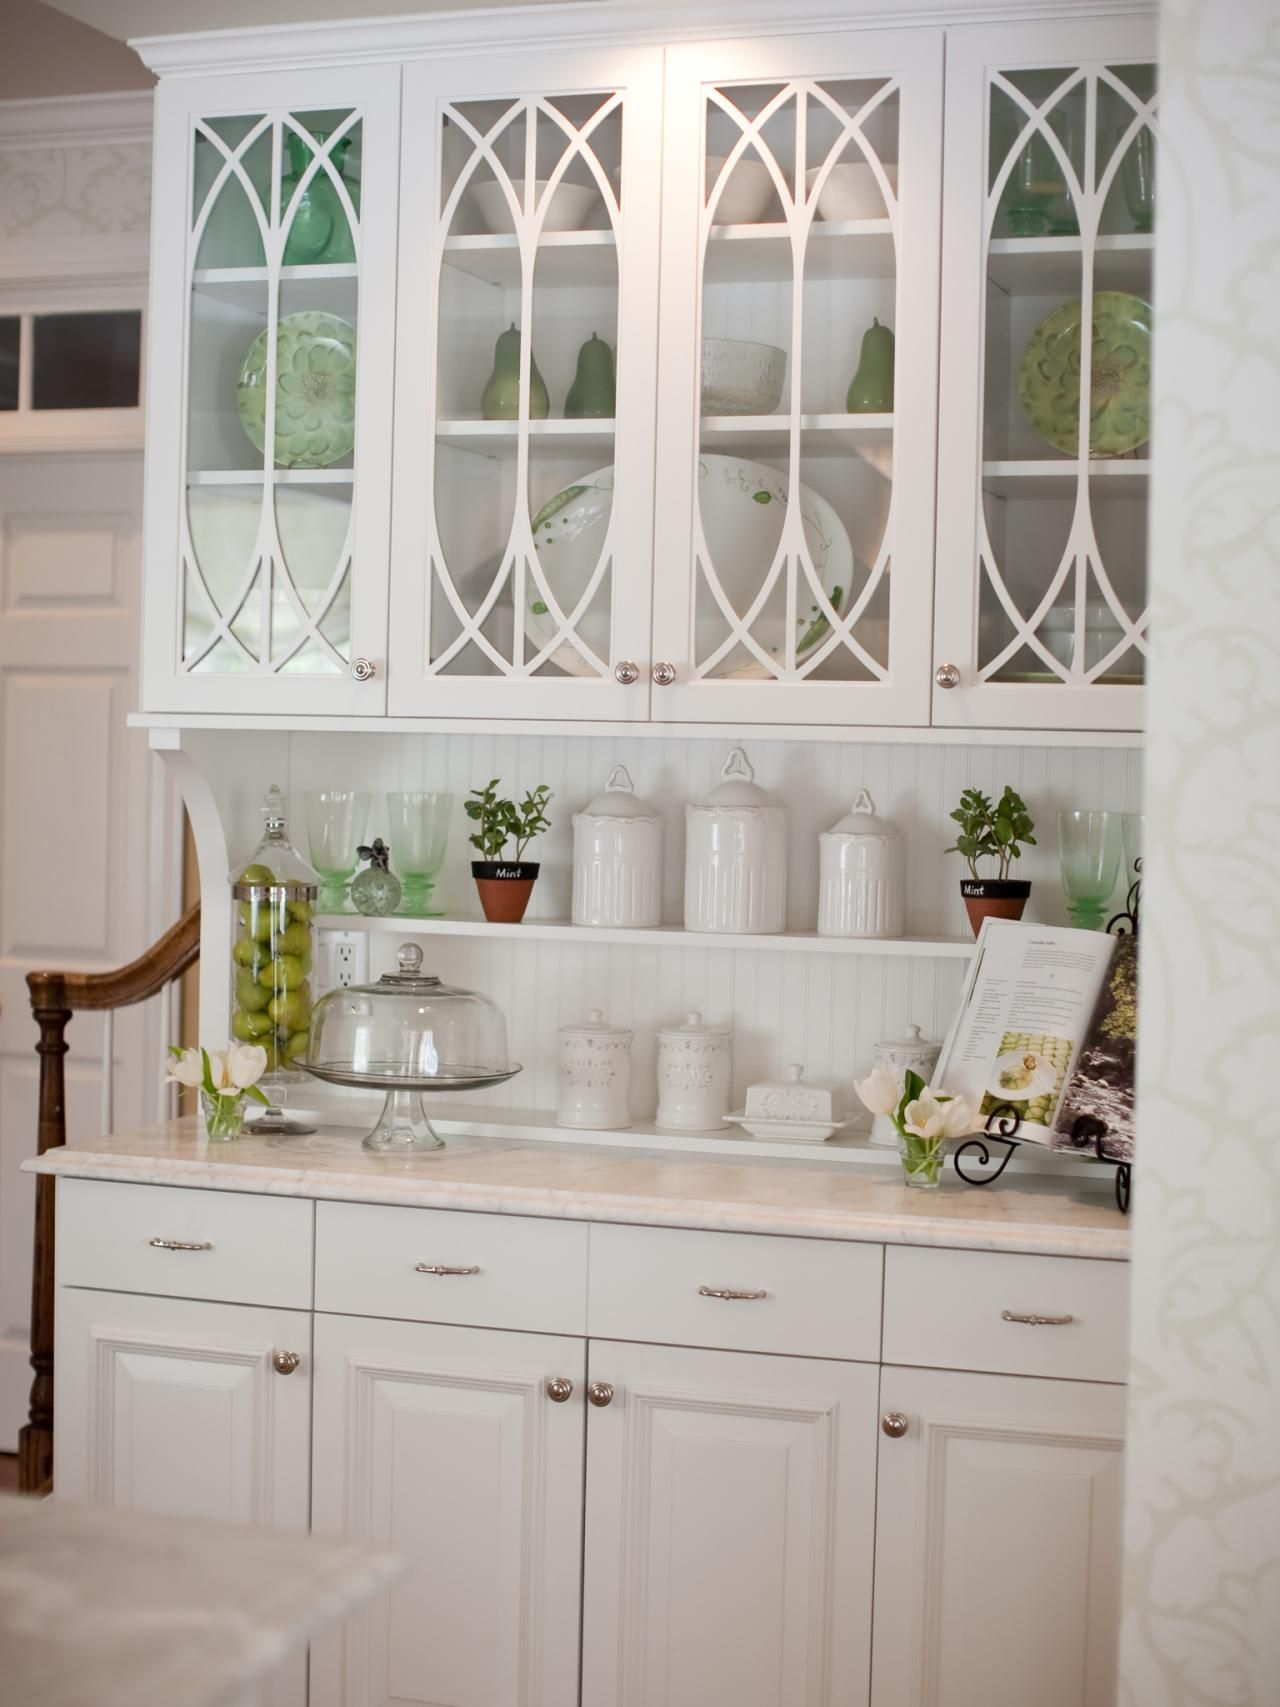 This builtin hutch with traditional glass doors